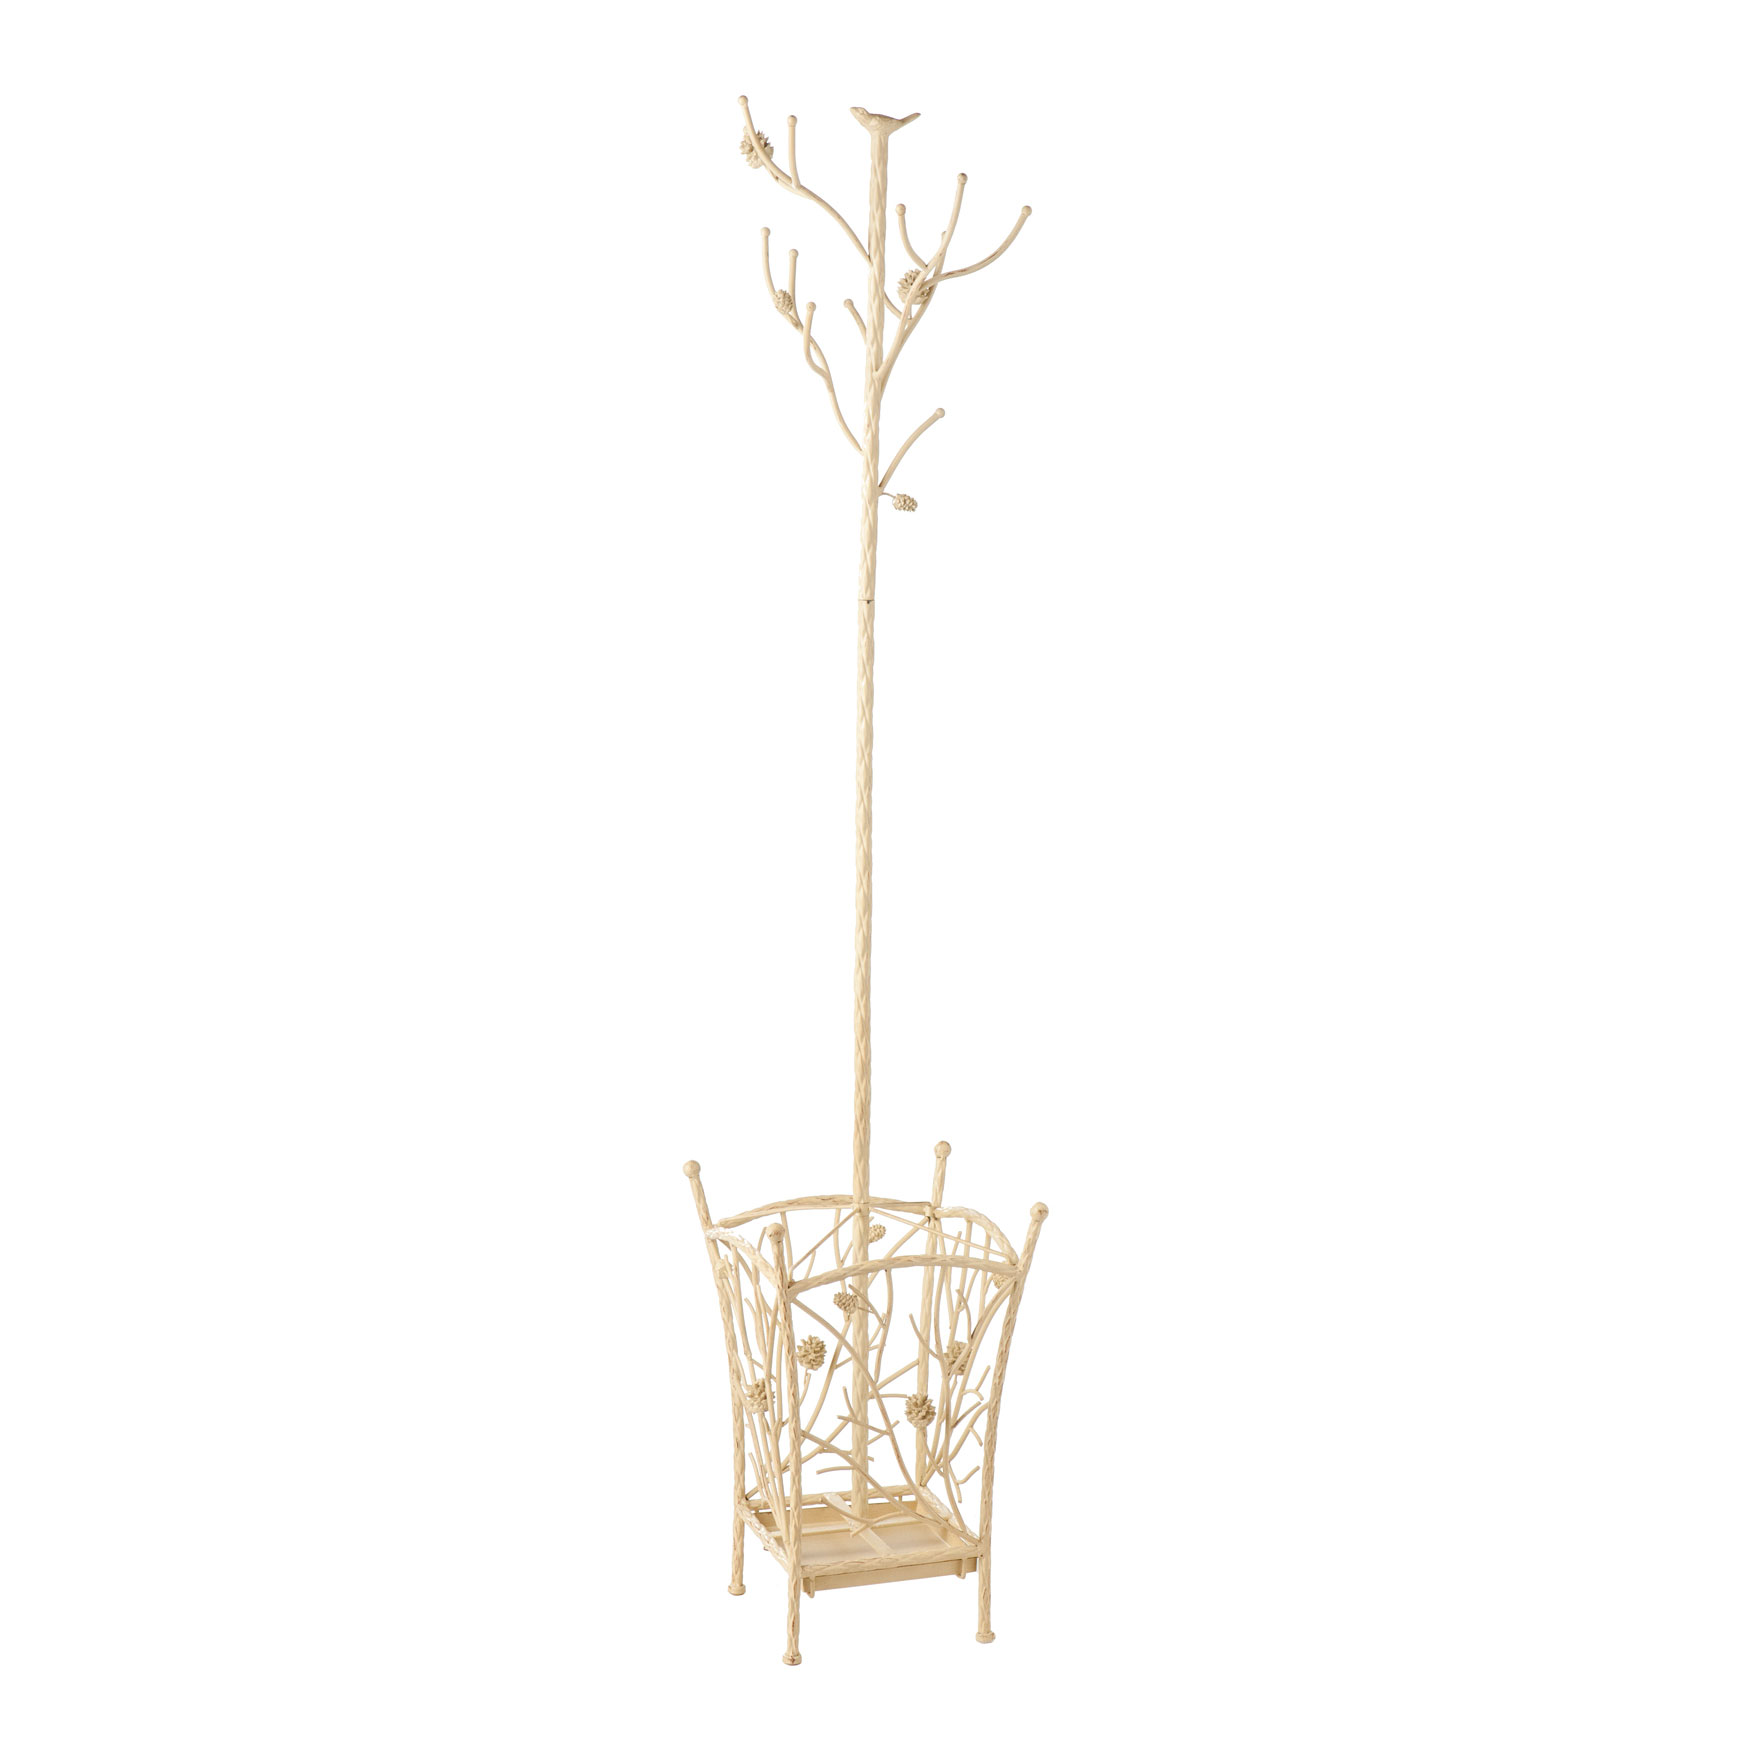 Bird and Branch Antique Metal Hall Tree, FRENCH VANILLA